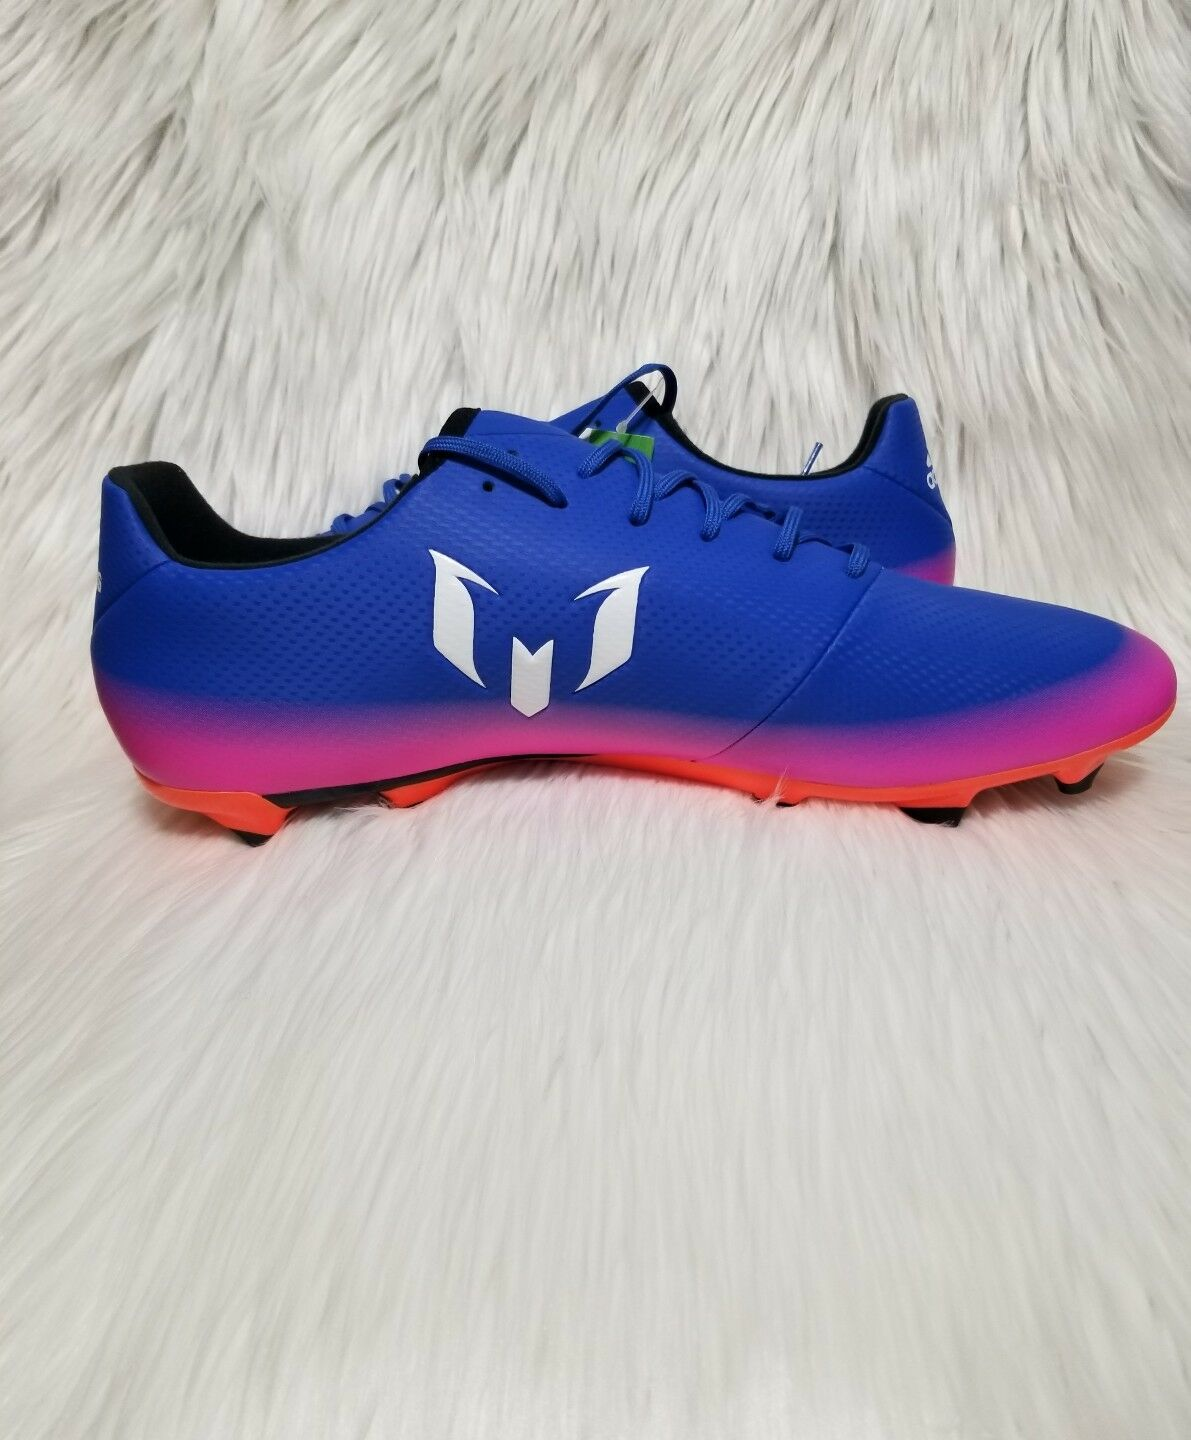 Adidas Messi 16.3 FG Soccer Cleats Mens Sz 12 bluee Pink orange White BA9021